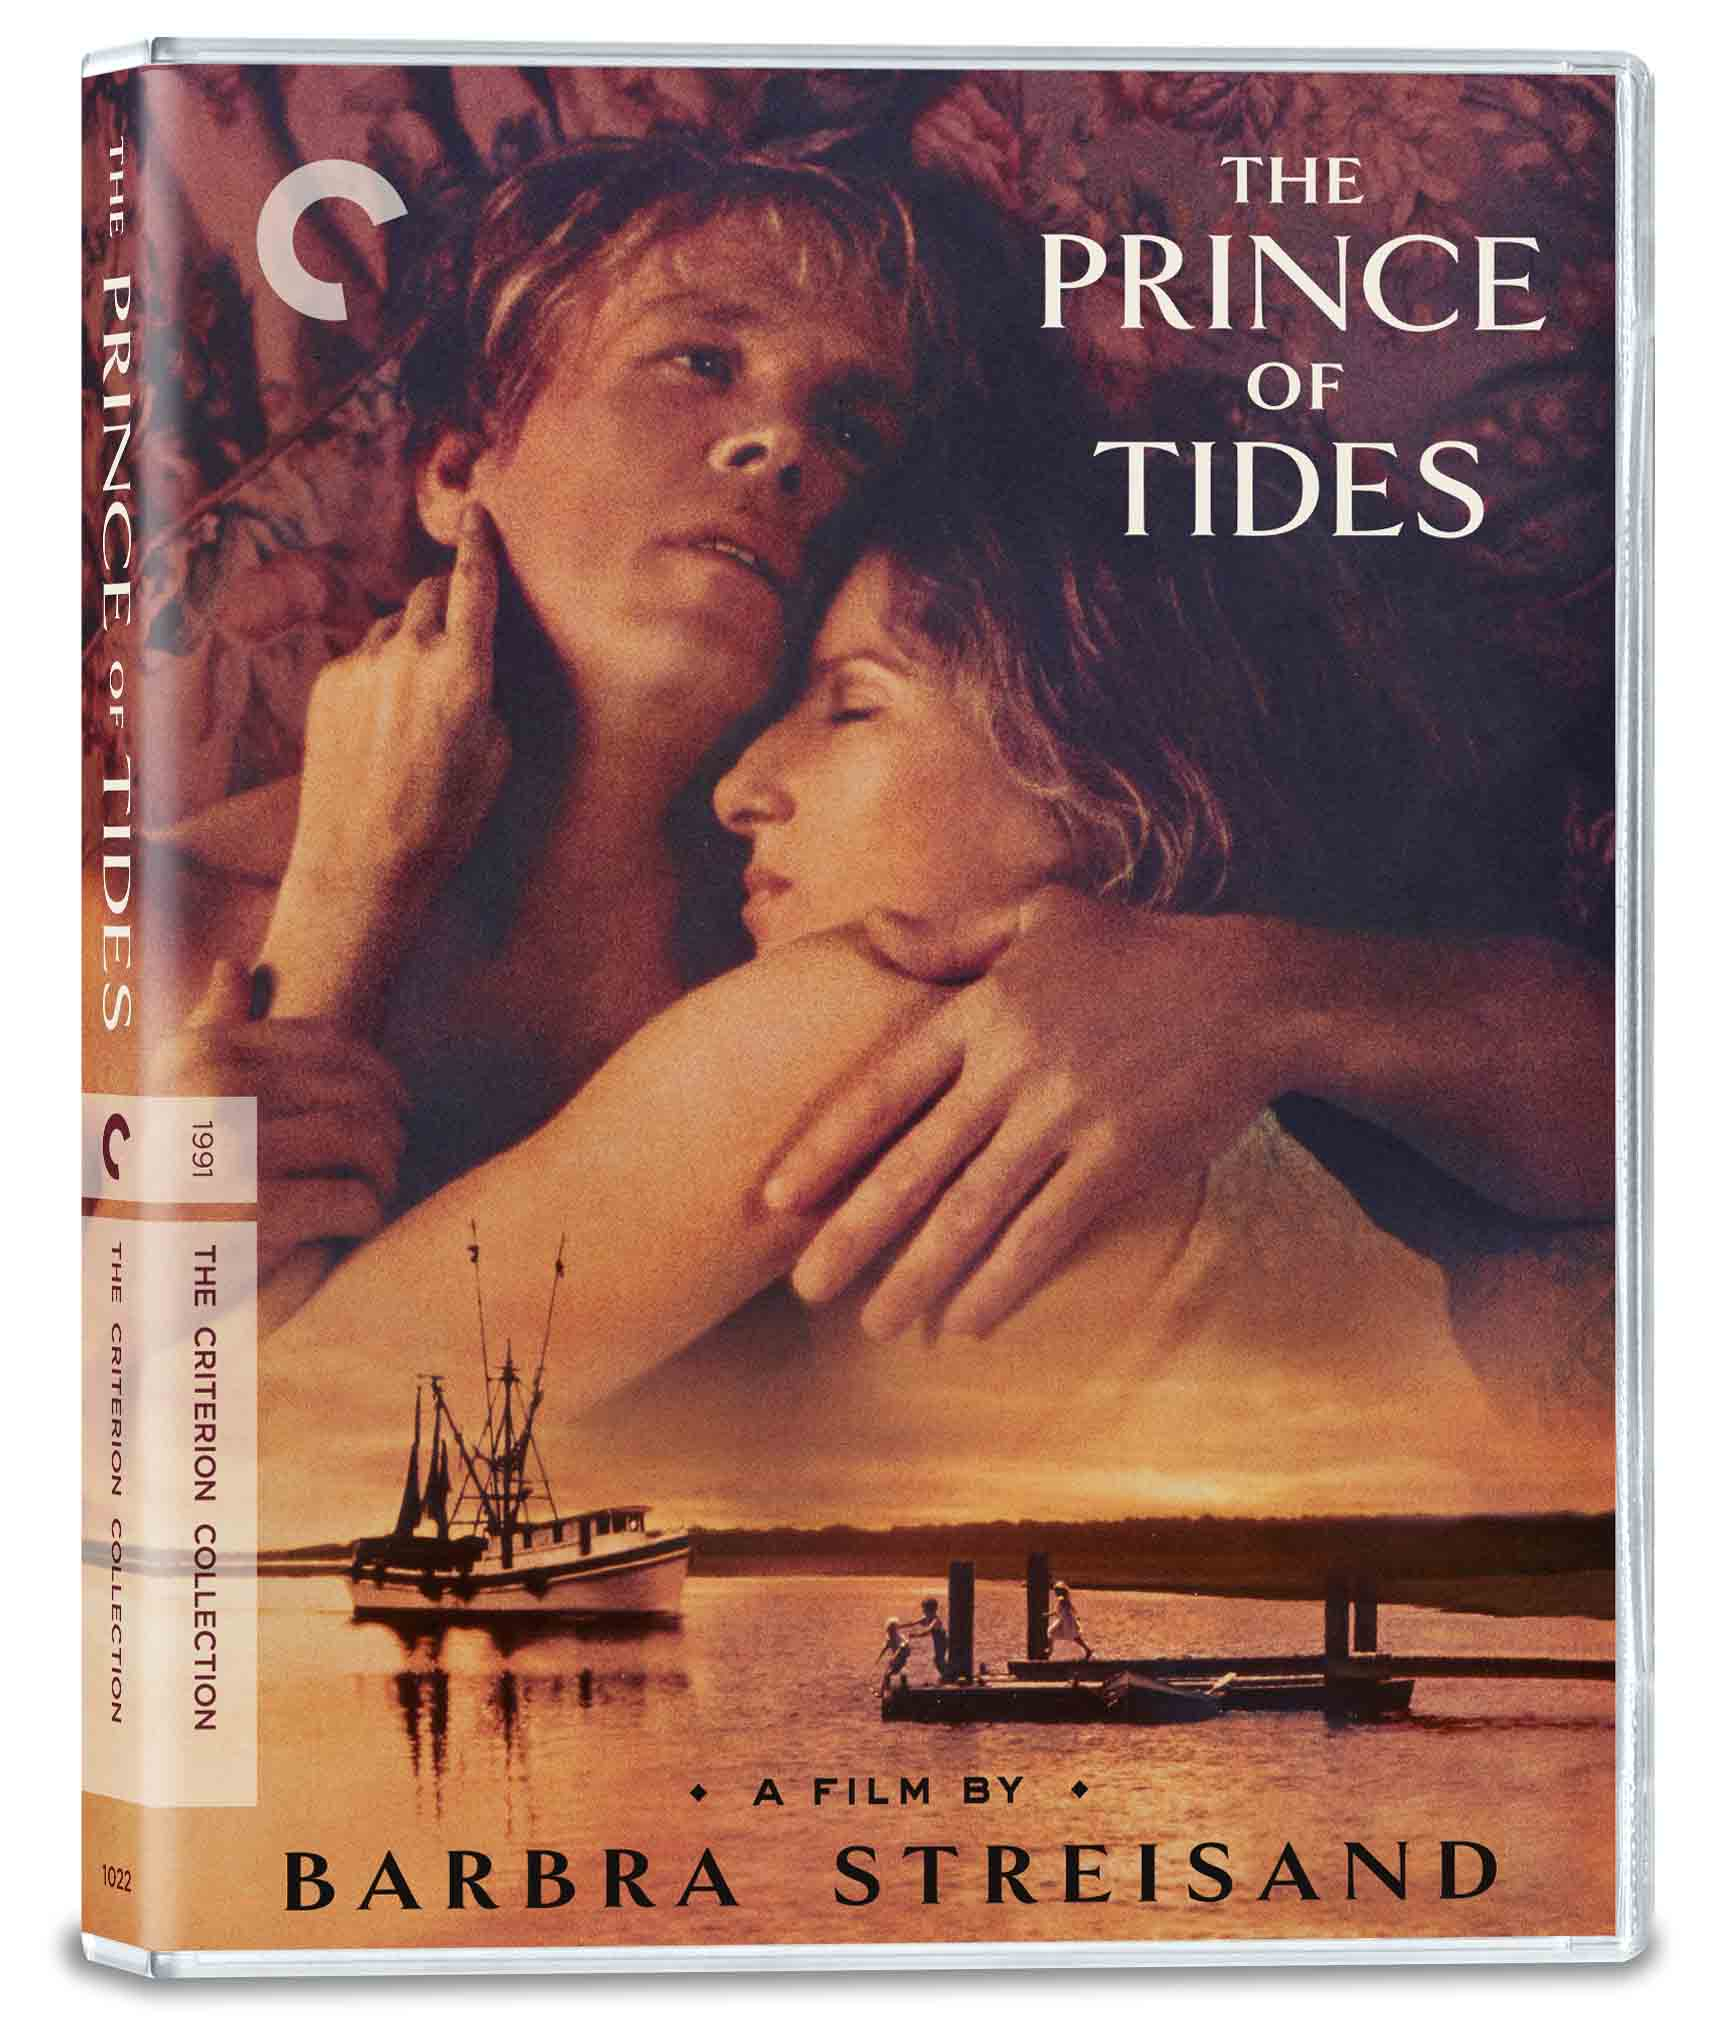 Buy The Prince of Tides (Blu-ray)